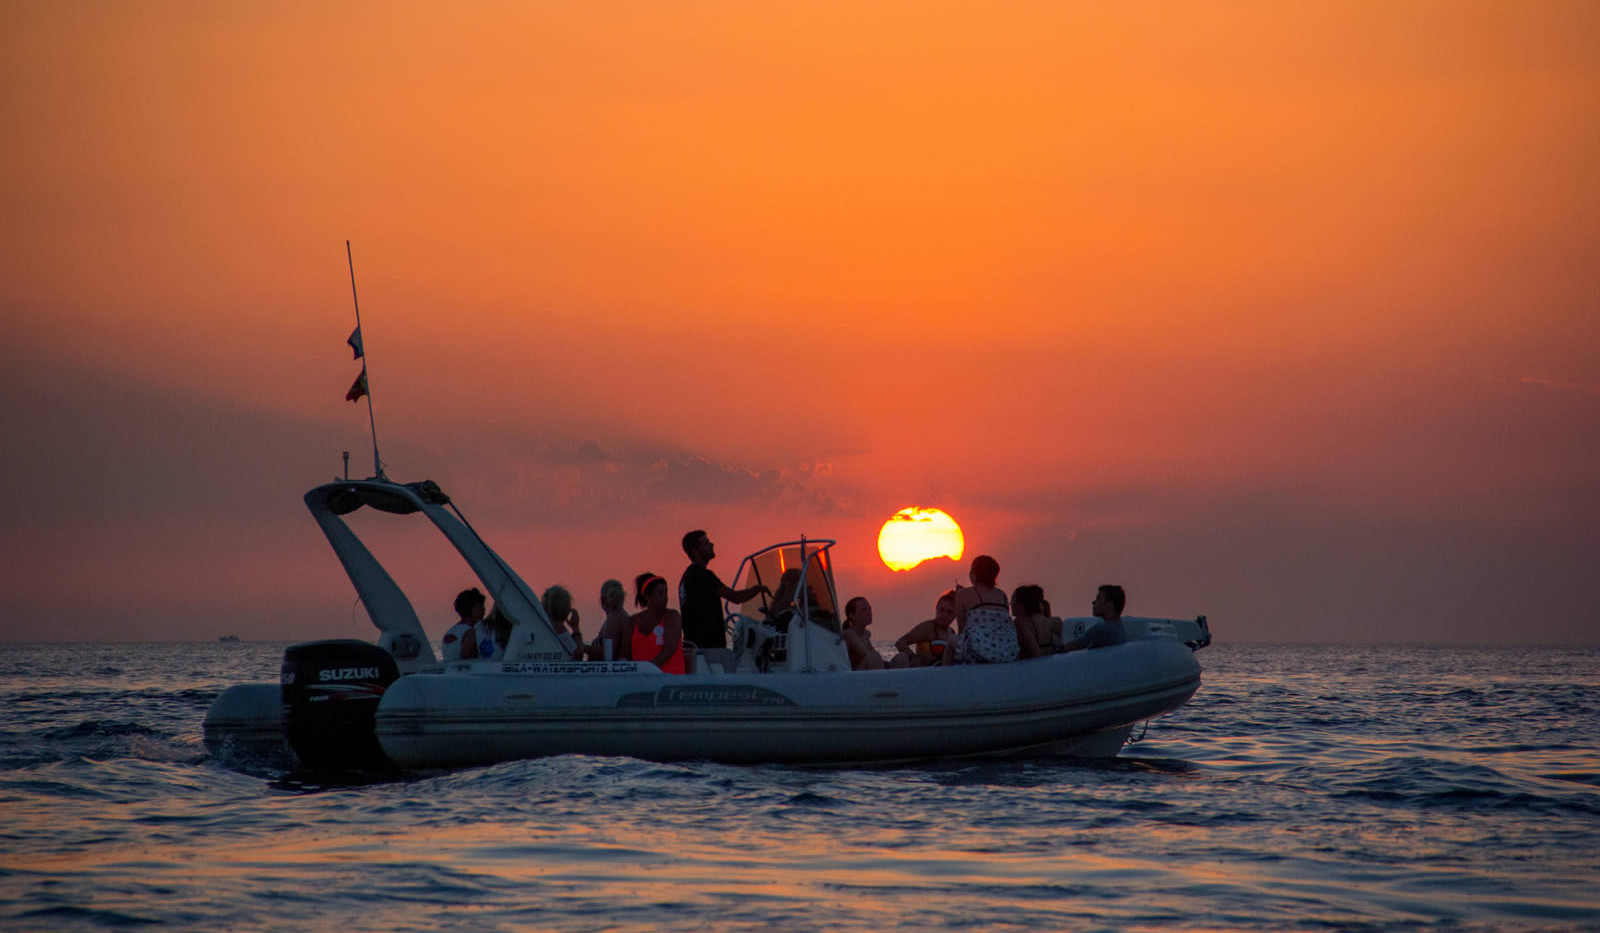 speedboat-sunset1.jpg